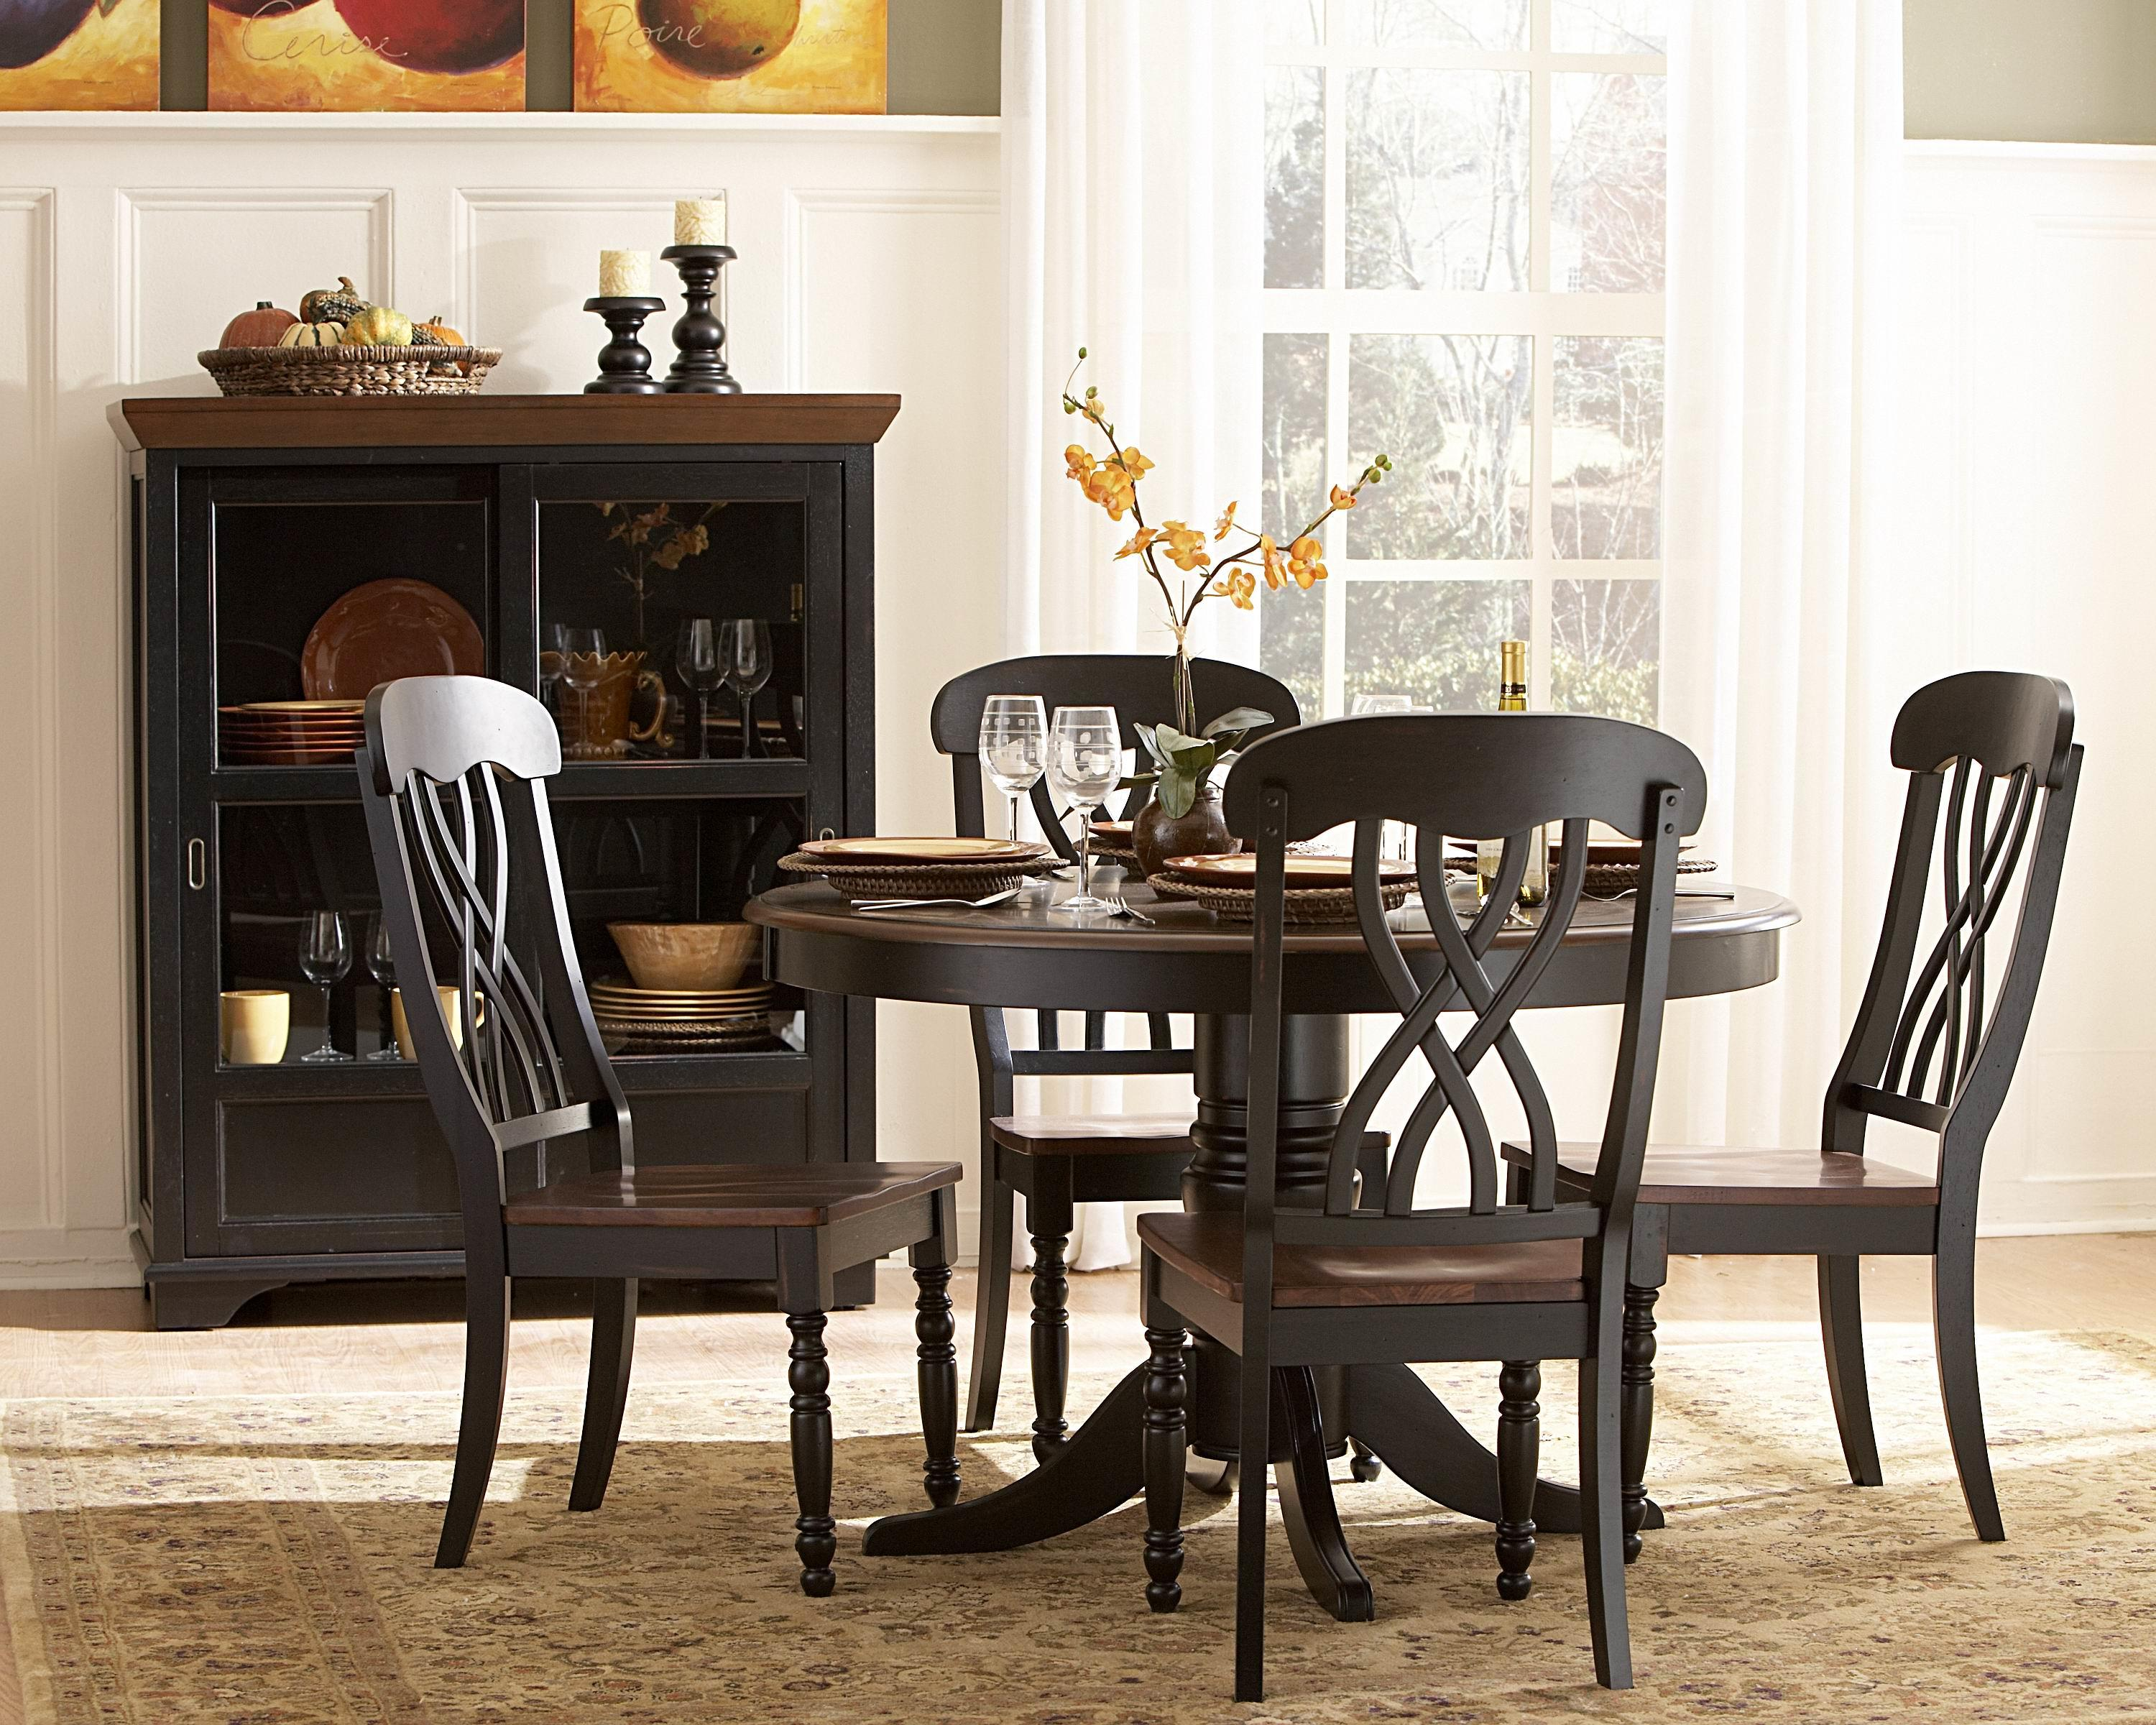 Dark Wood Dining Room Chairs good looking parson chairs method toronto contemporary dining room decorating ideas with area rug dark wood floor gray trim iron chandelier parsons chair Wood Round Table 4 Chairs Rug Buffet